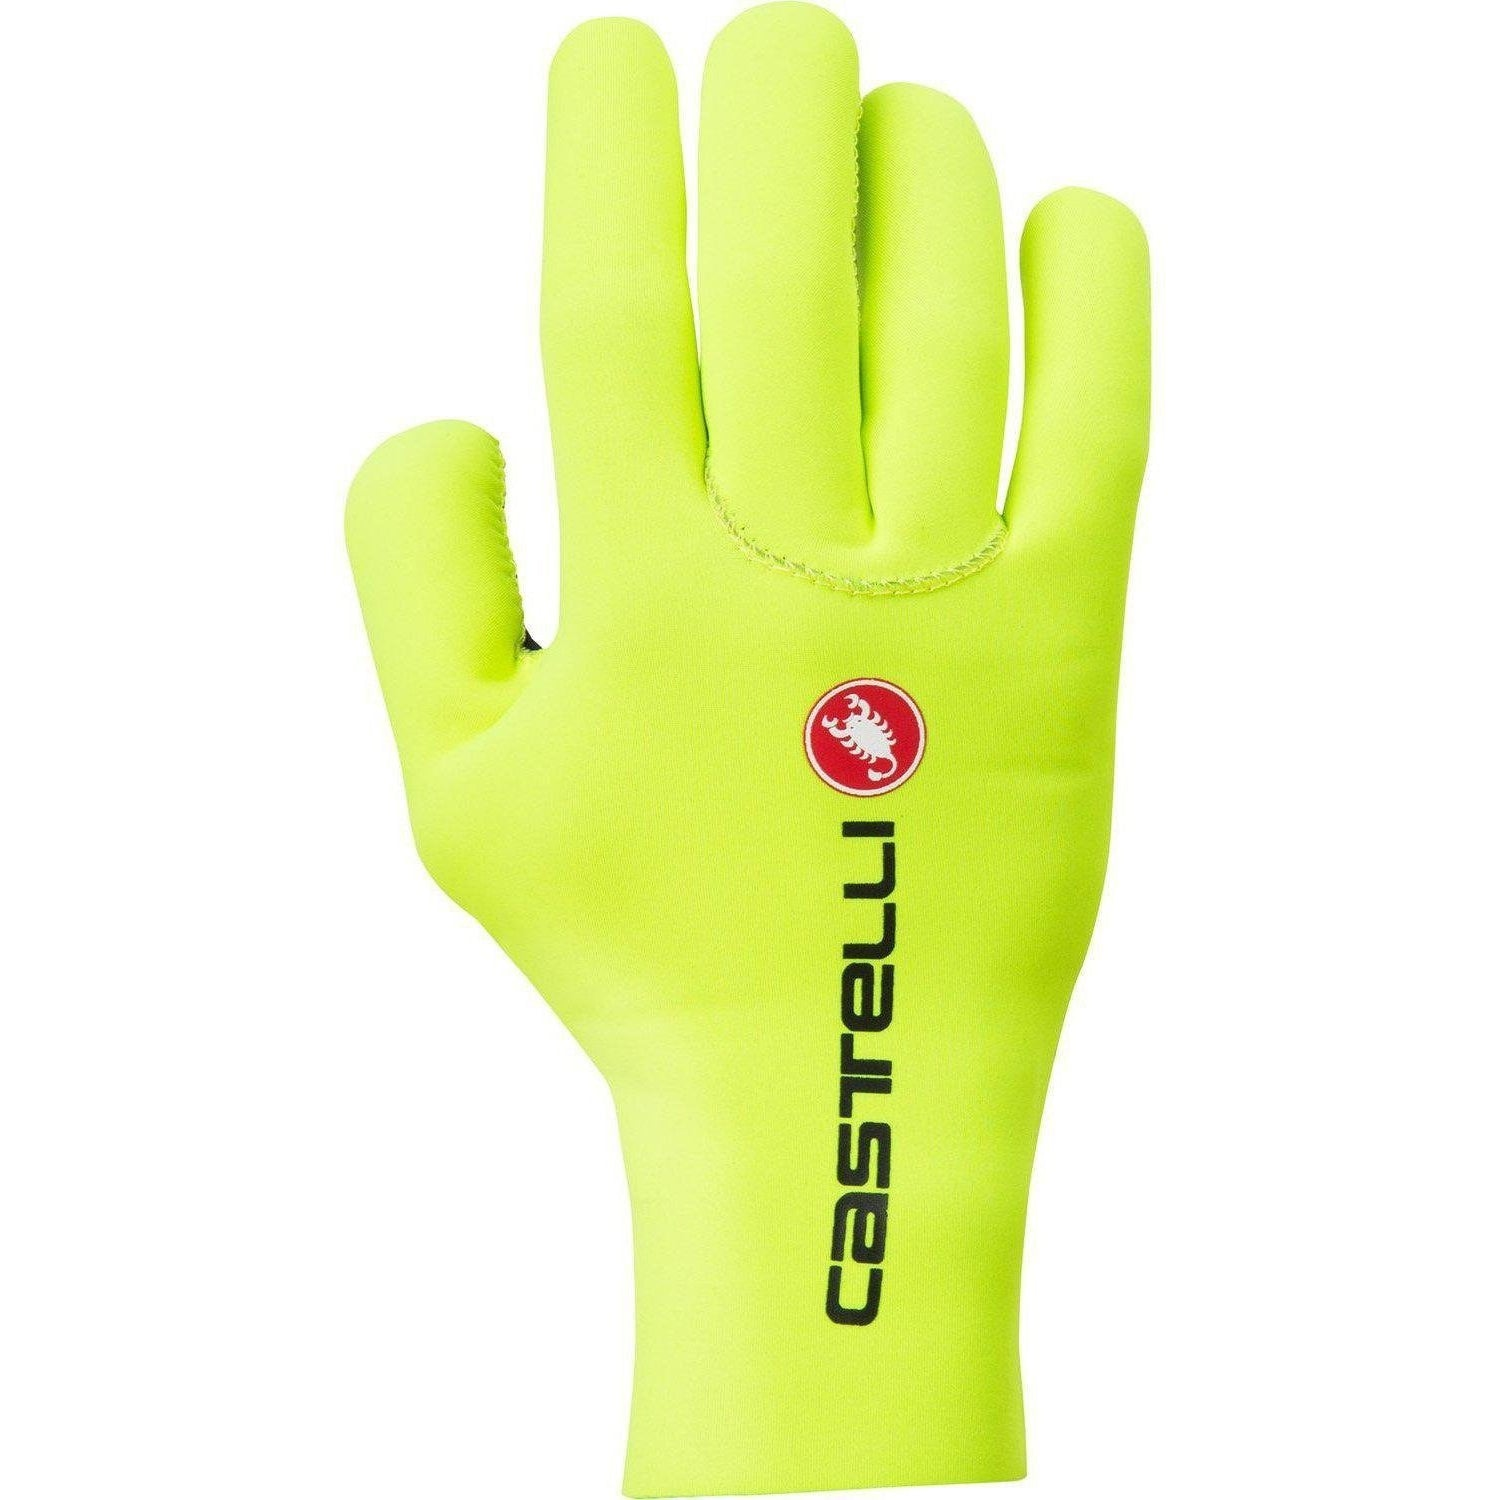 Castelli-Castelli Diluvio C Gloves-Yellow Fluo-S/M-CS1752403209-saddleback-elite-performance-cycling